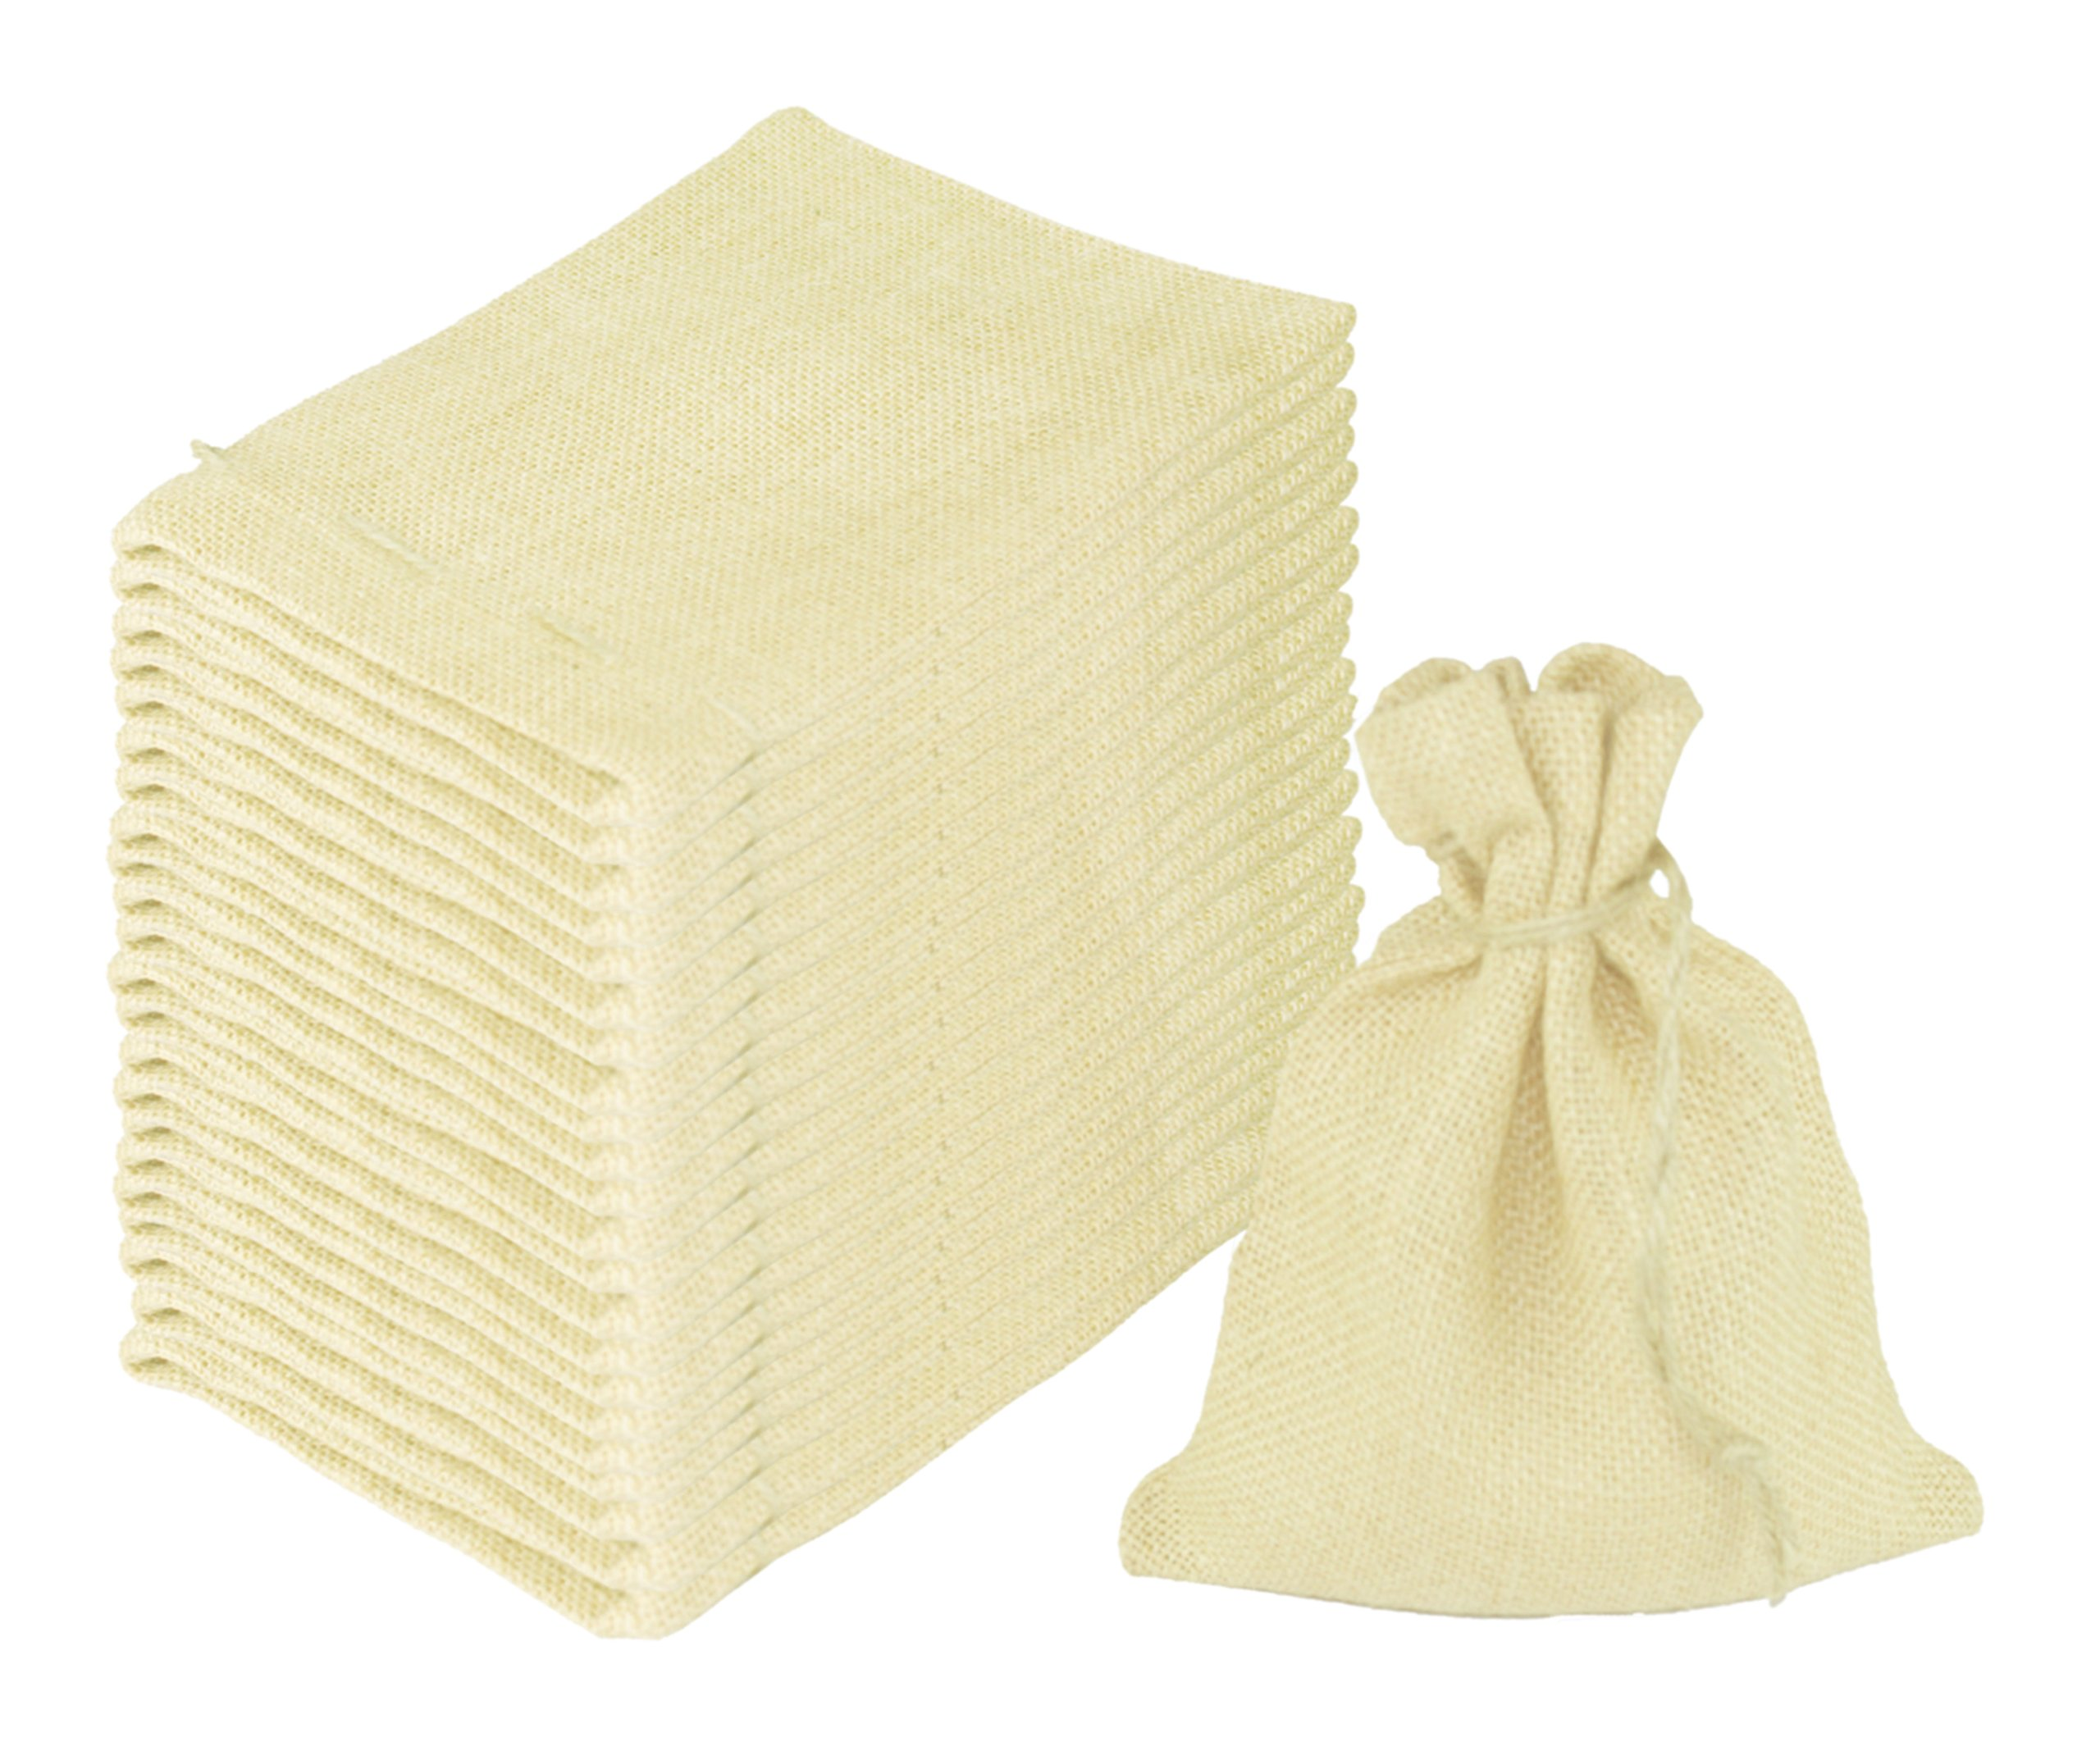 Cotton Craft - 24 Pack - Jute Burlap Gift Bags - Ivory - 6x8 - Versatile - Sturdy - Rustic - Durable Jewelry Pouches Sacks for Wedding Party Shower Birthday.